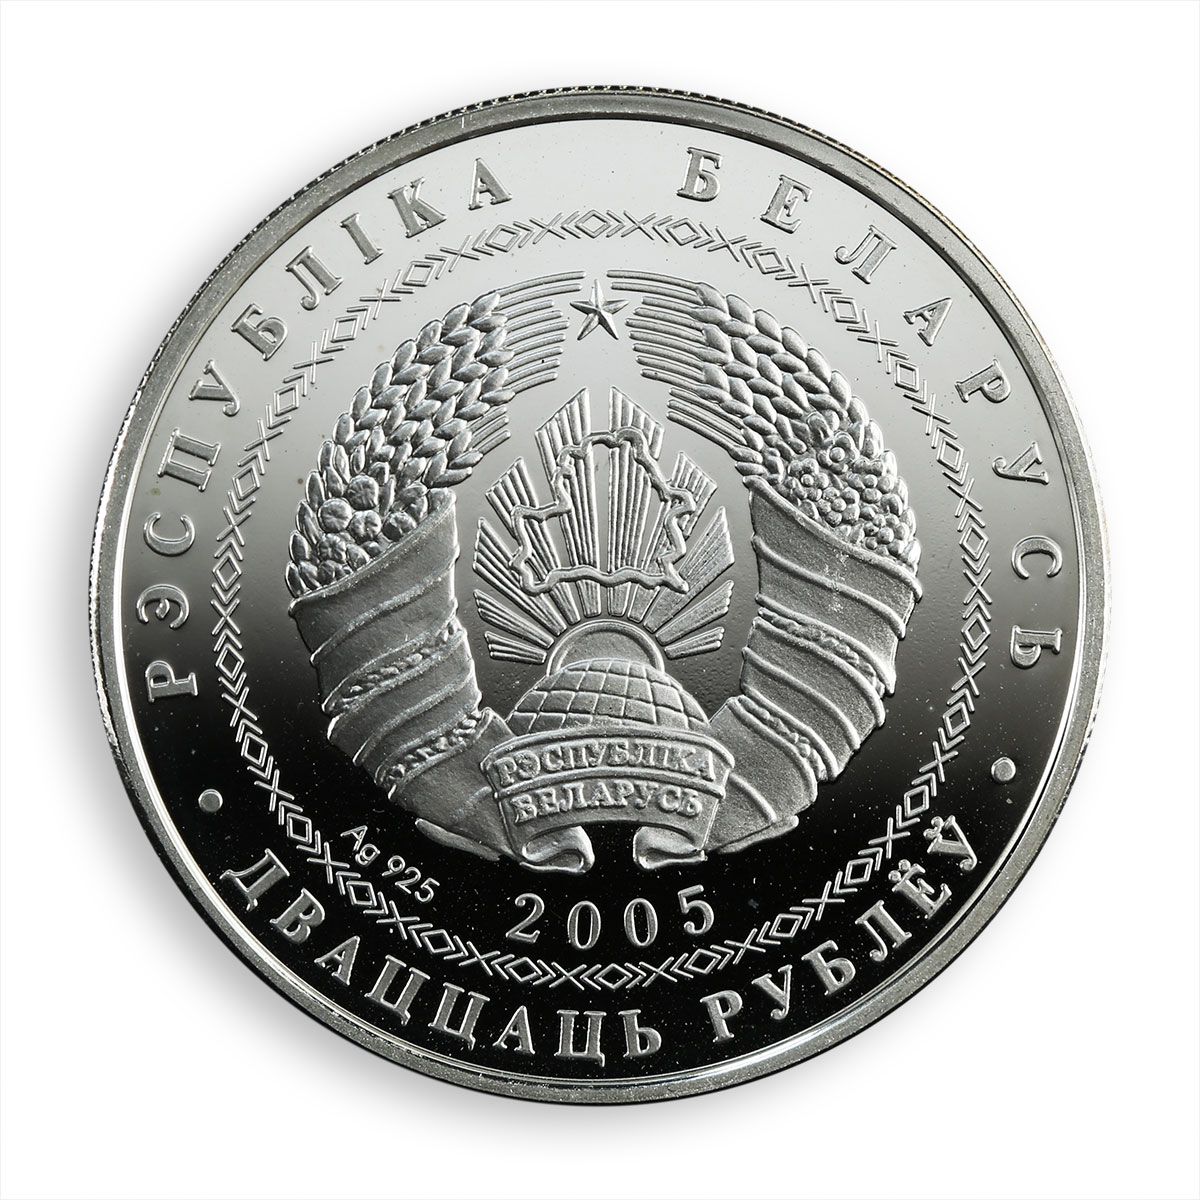 Belarus 20 rubles, Hockey, Olympic Games, Torino Sport Silver Proof Coin 2005